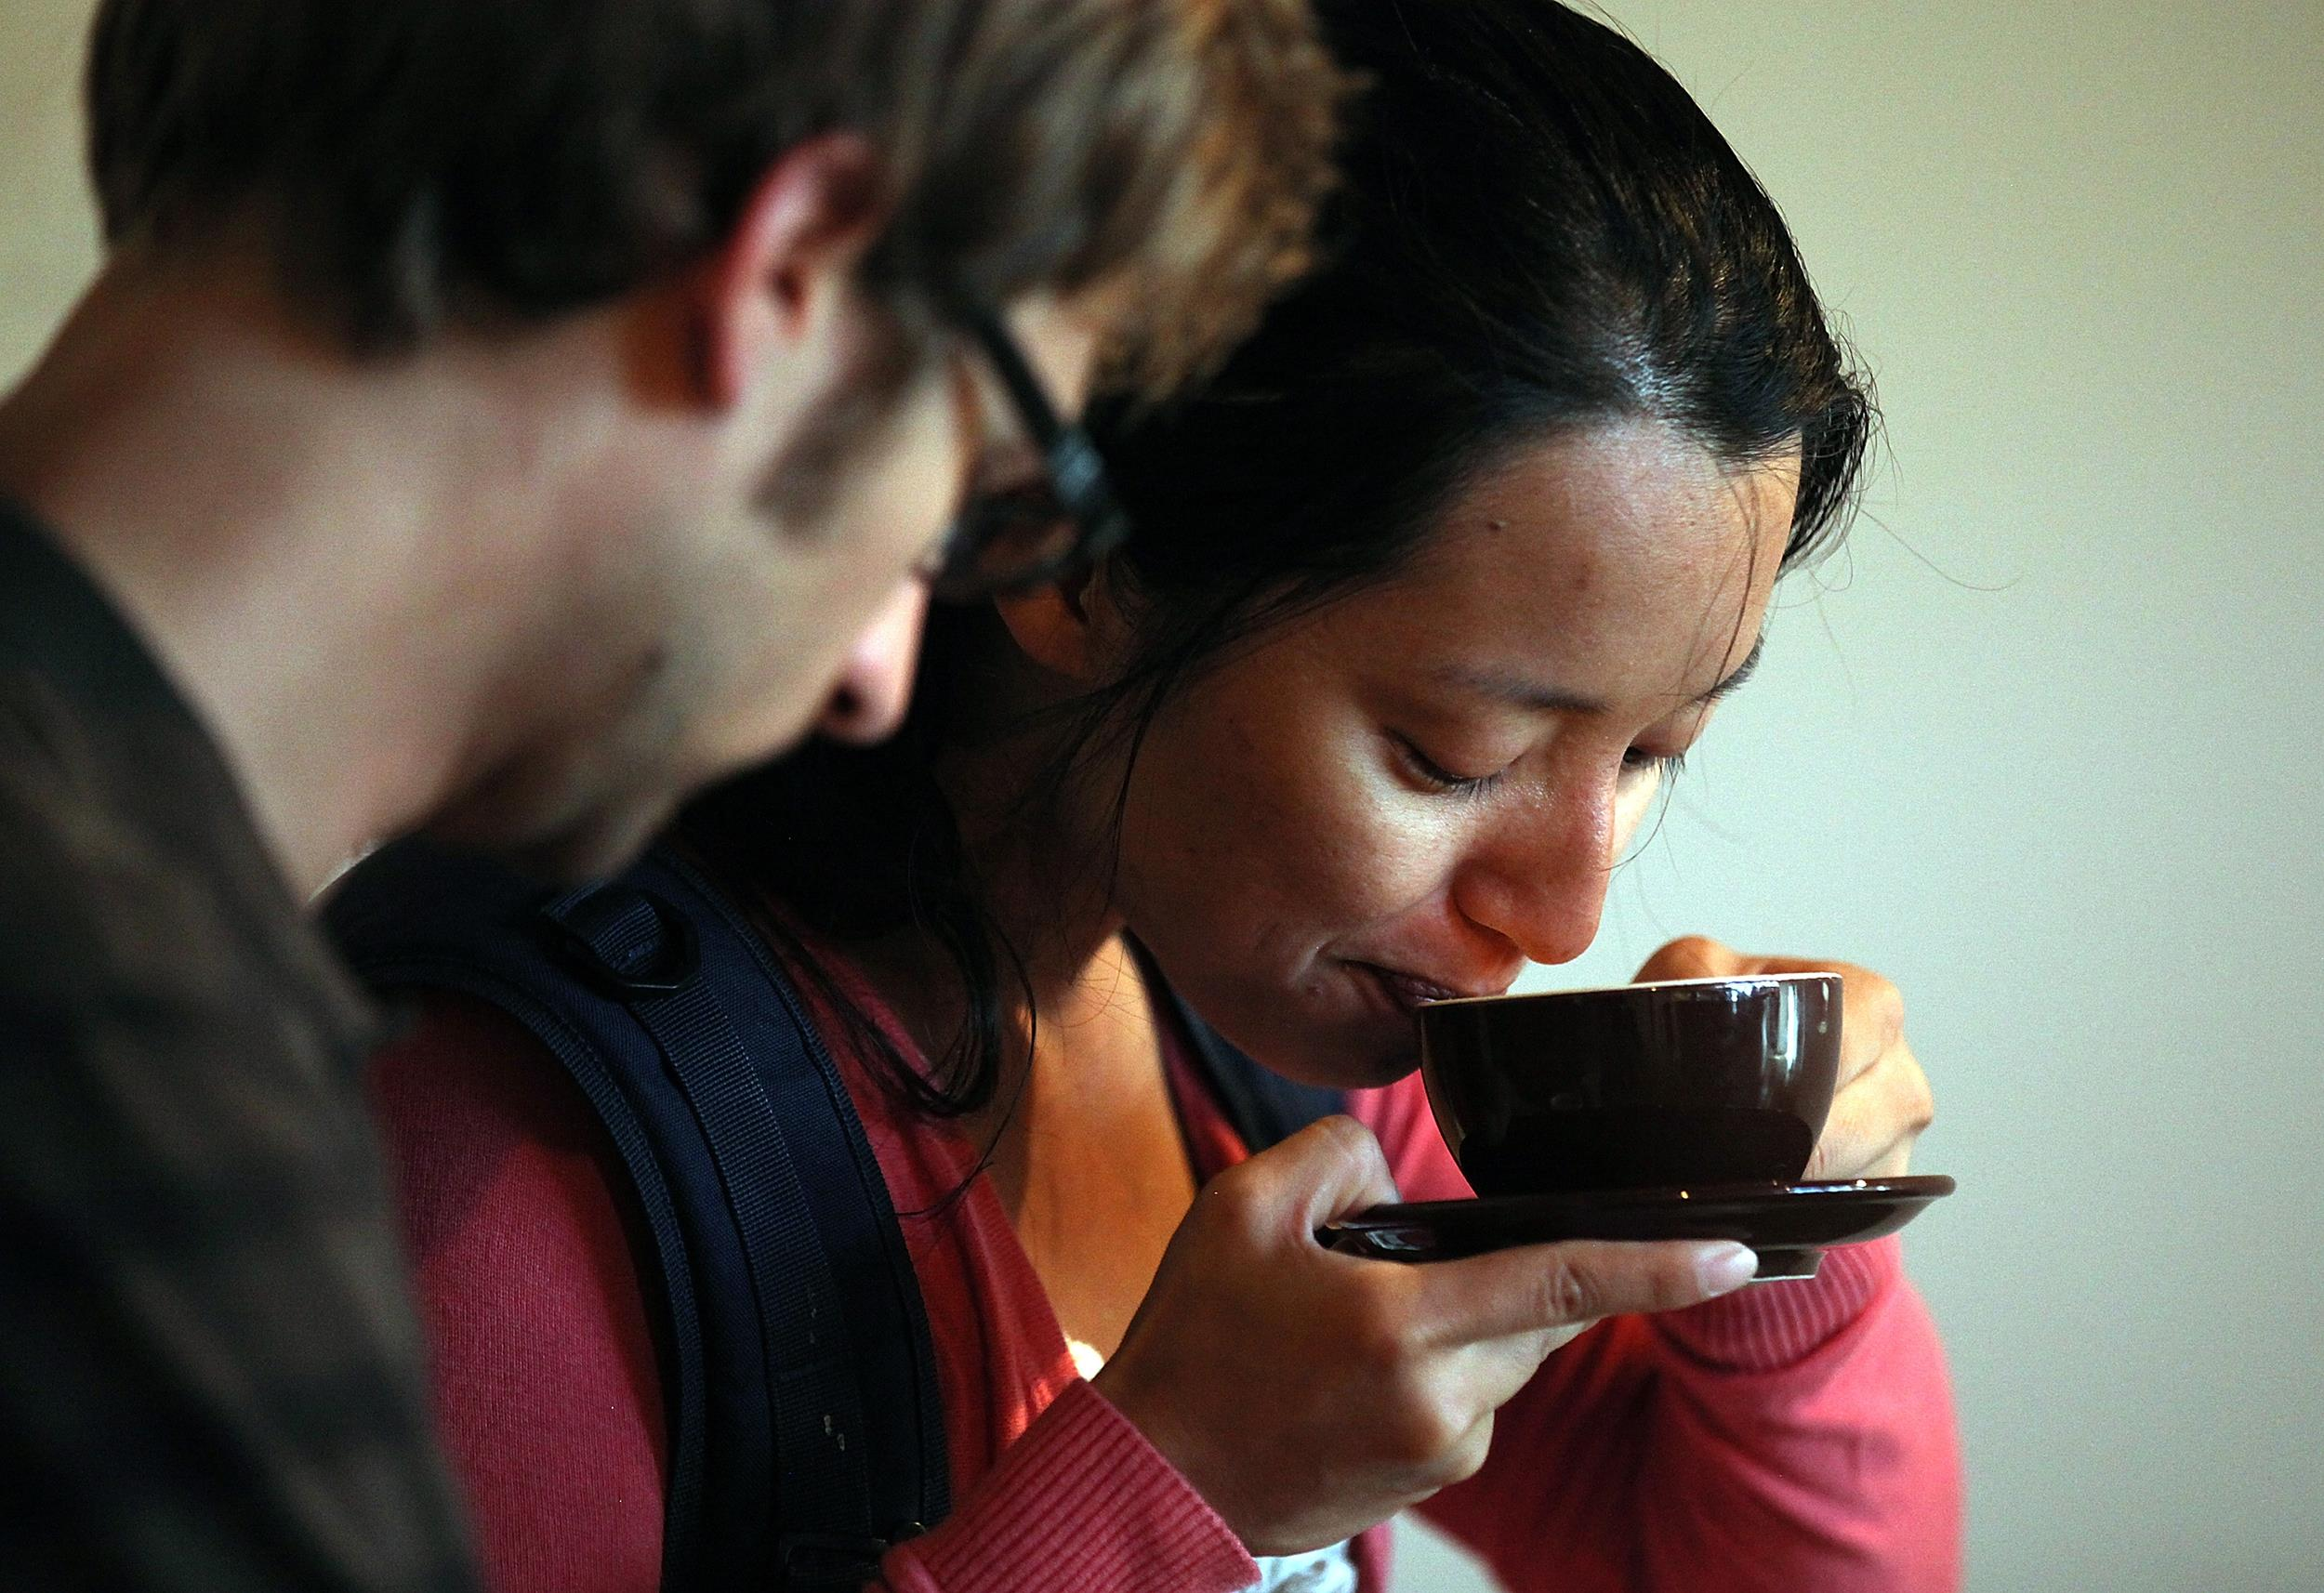 Image: A woman sips a cup of coffee.